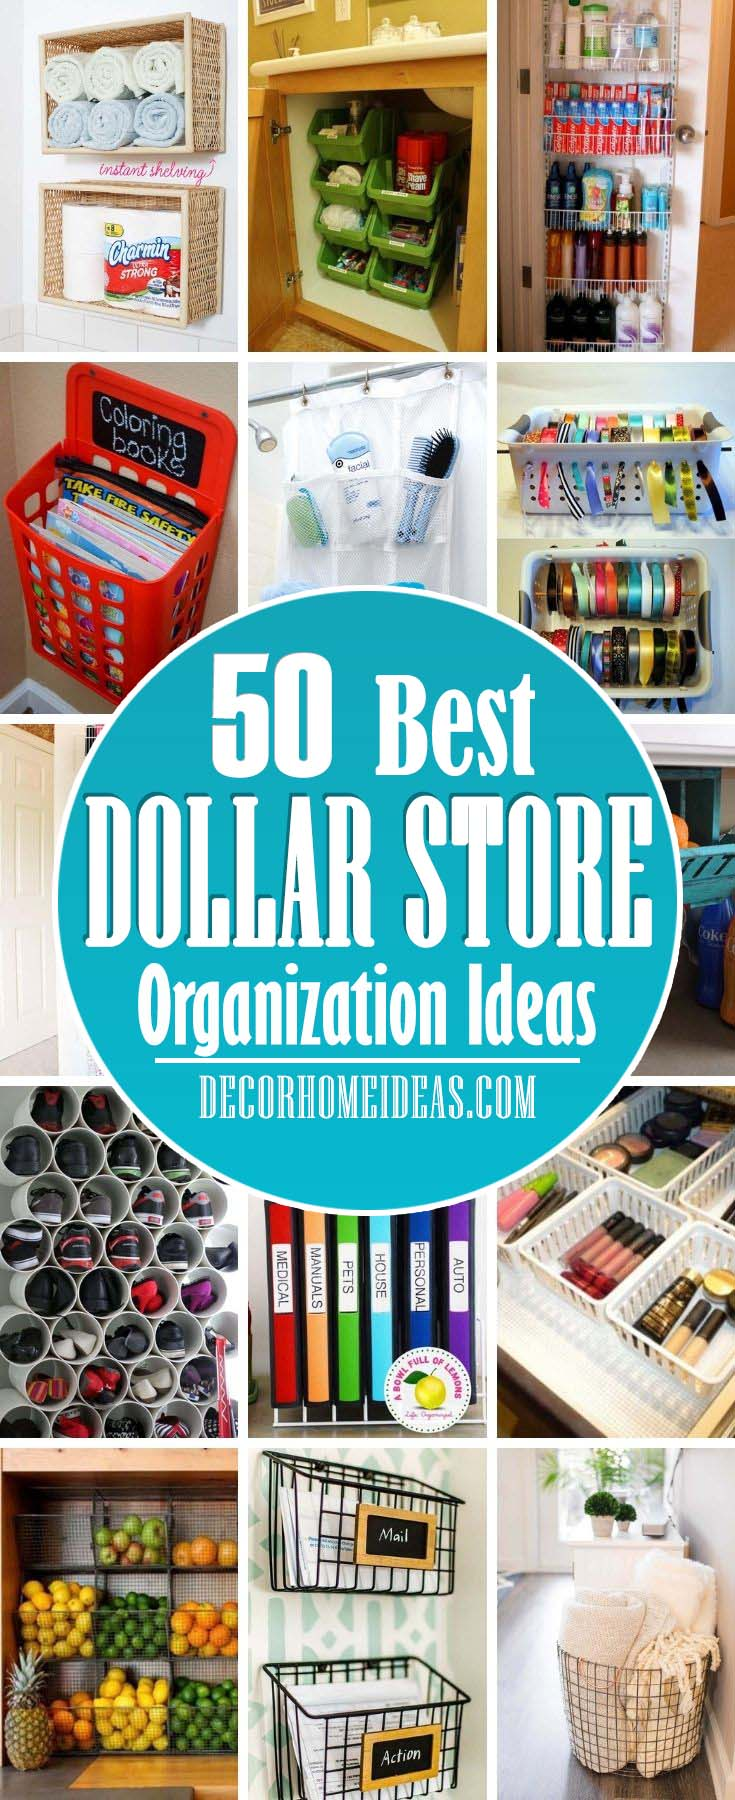 Best Dollar Store Organization Storage Ideas. Are you looking for some cheap and easy ideas to make your home neat and tidy? Organize for less with these creative dollar store organization and storage ideas #decorhomeideas